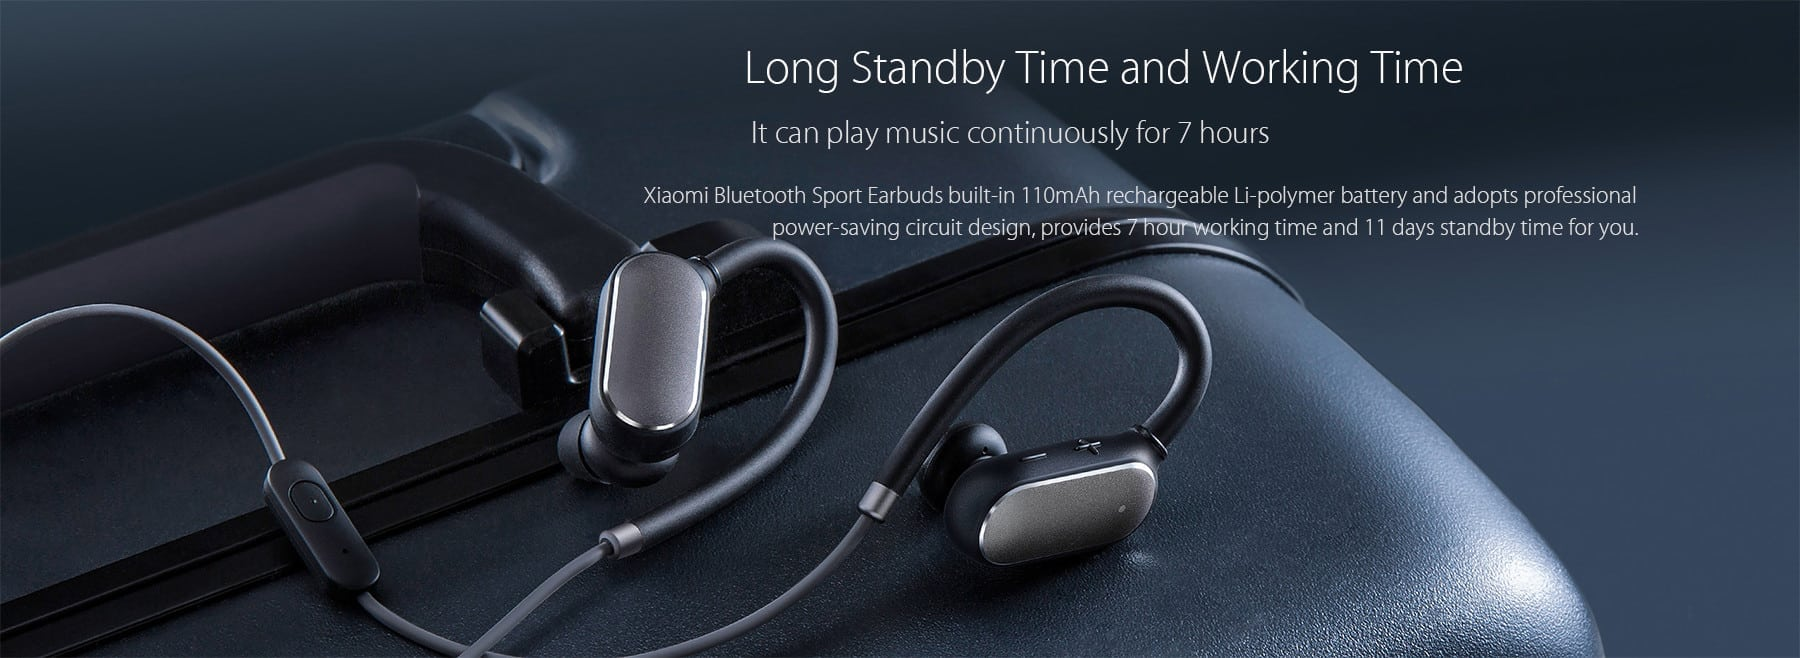 xiaomi wireless bluetooth 4 1 music sport earbuds review a budget earphone ideal for workouts. Black Bedroom Furniture Sets. Home Design Ideas